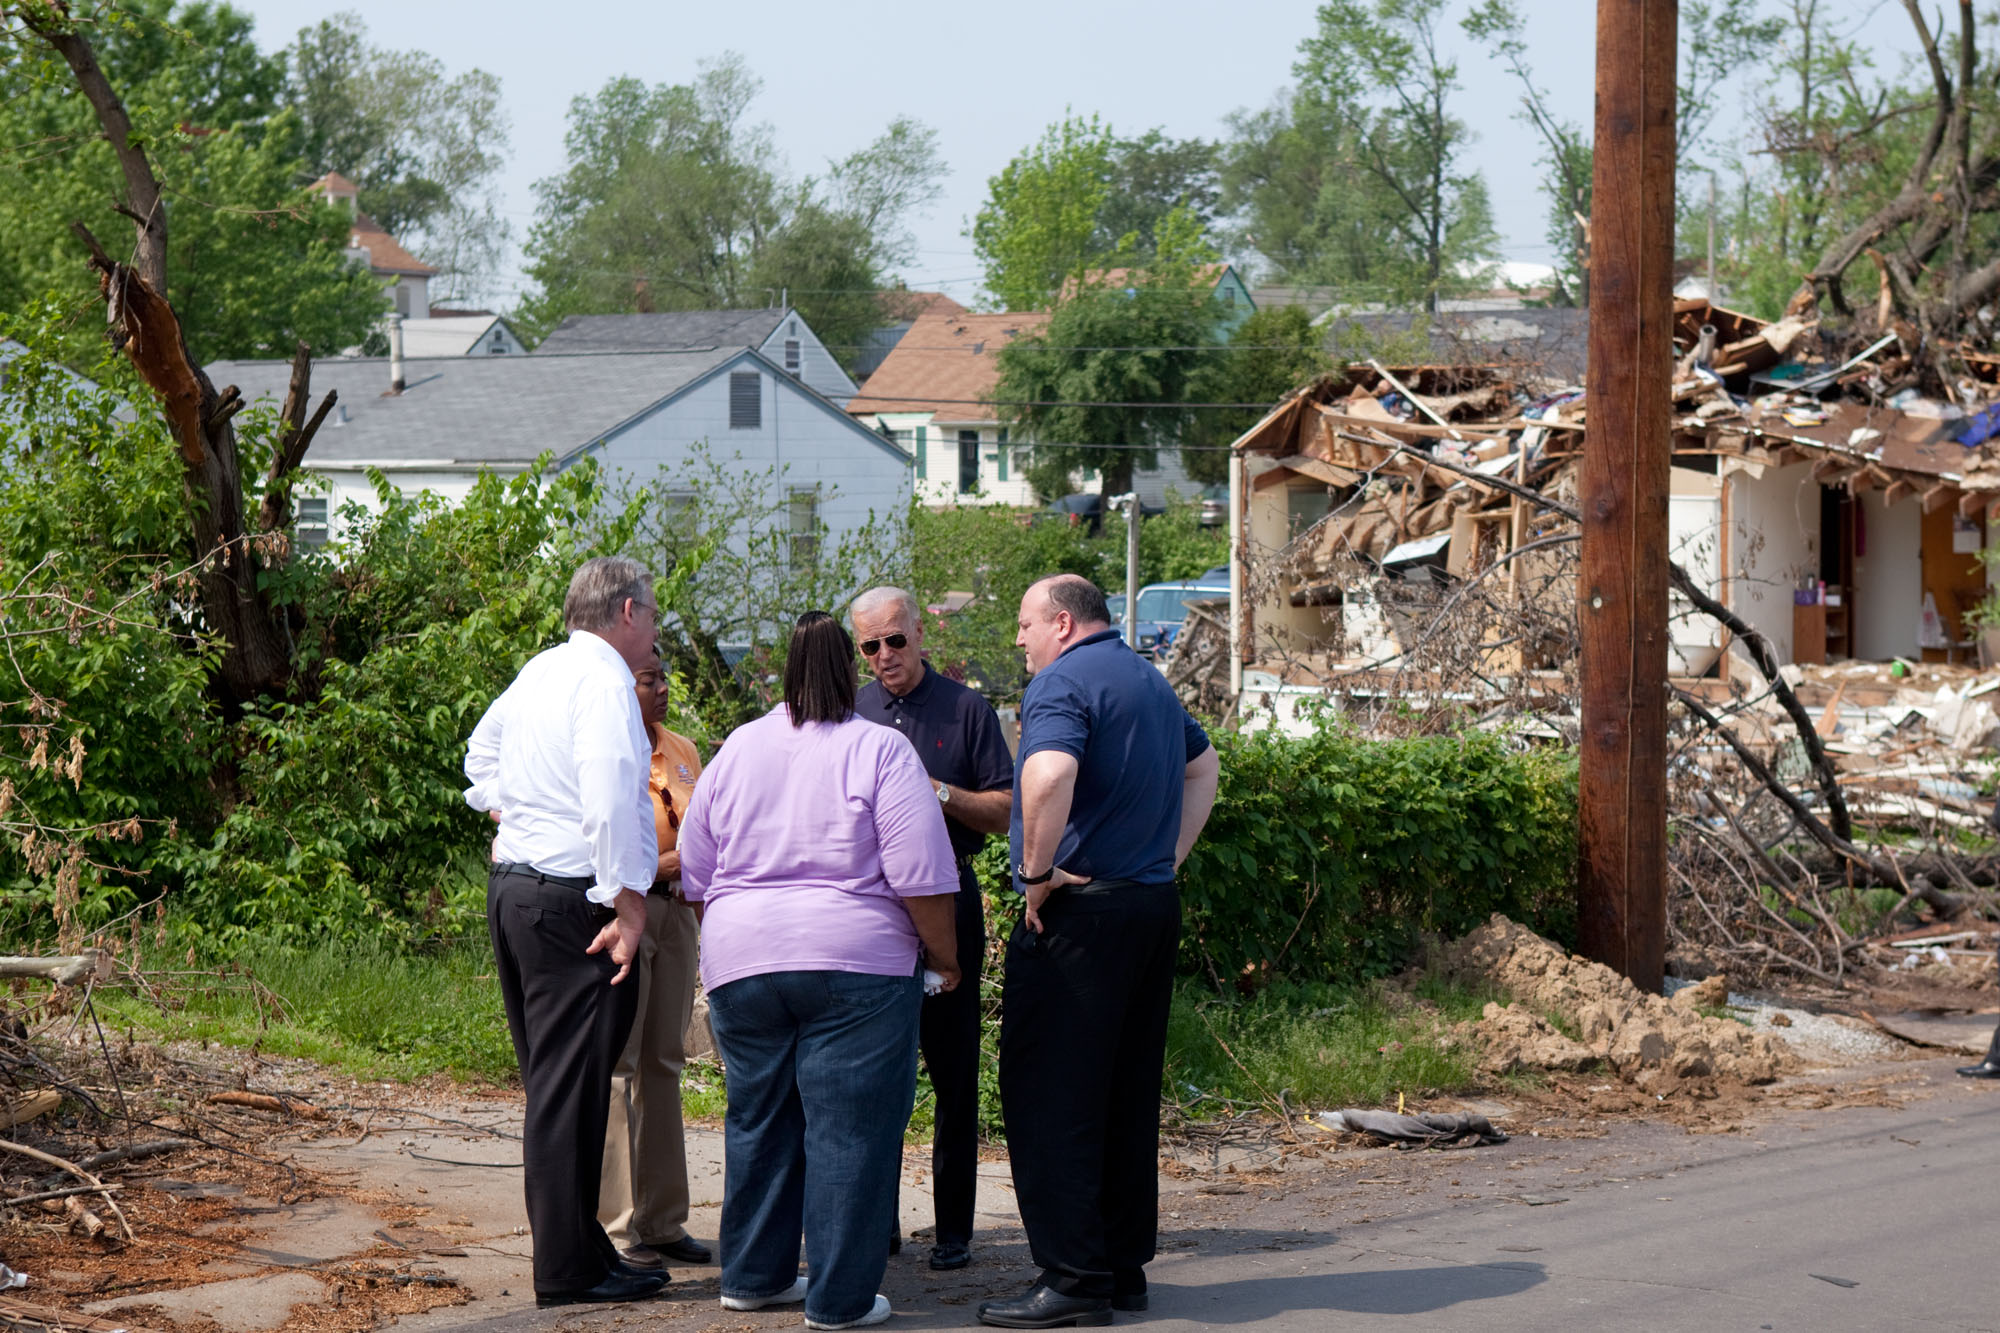 Vice President Joe Biden Talks with Residents During Tour of Tornado Damage in Missouri